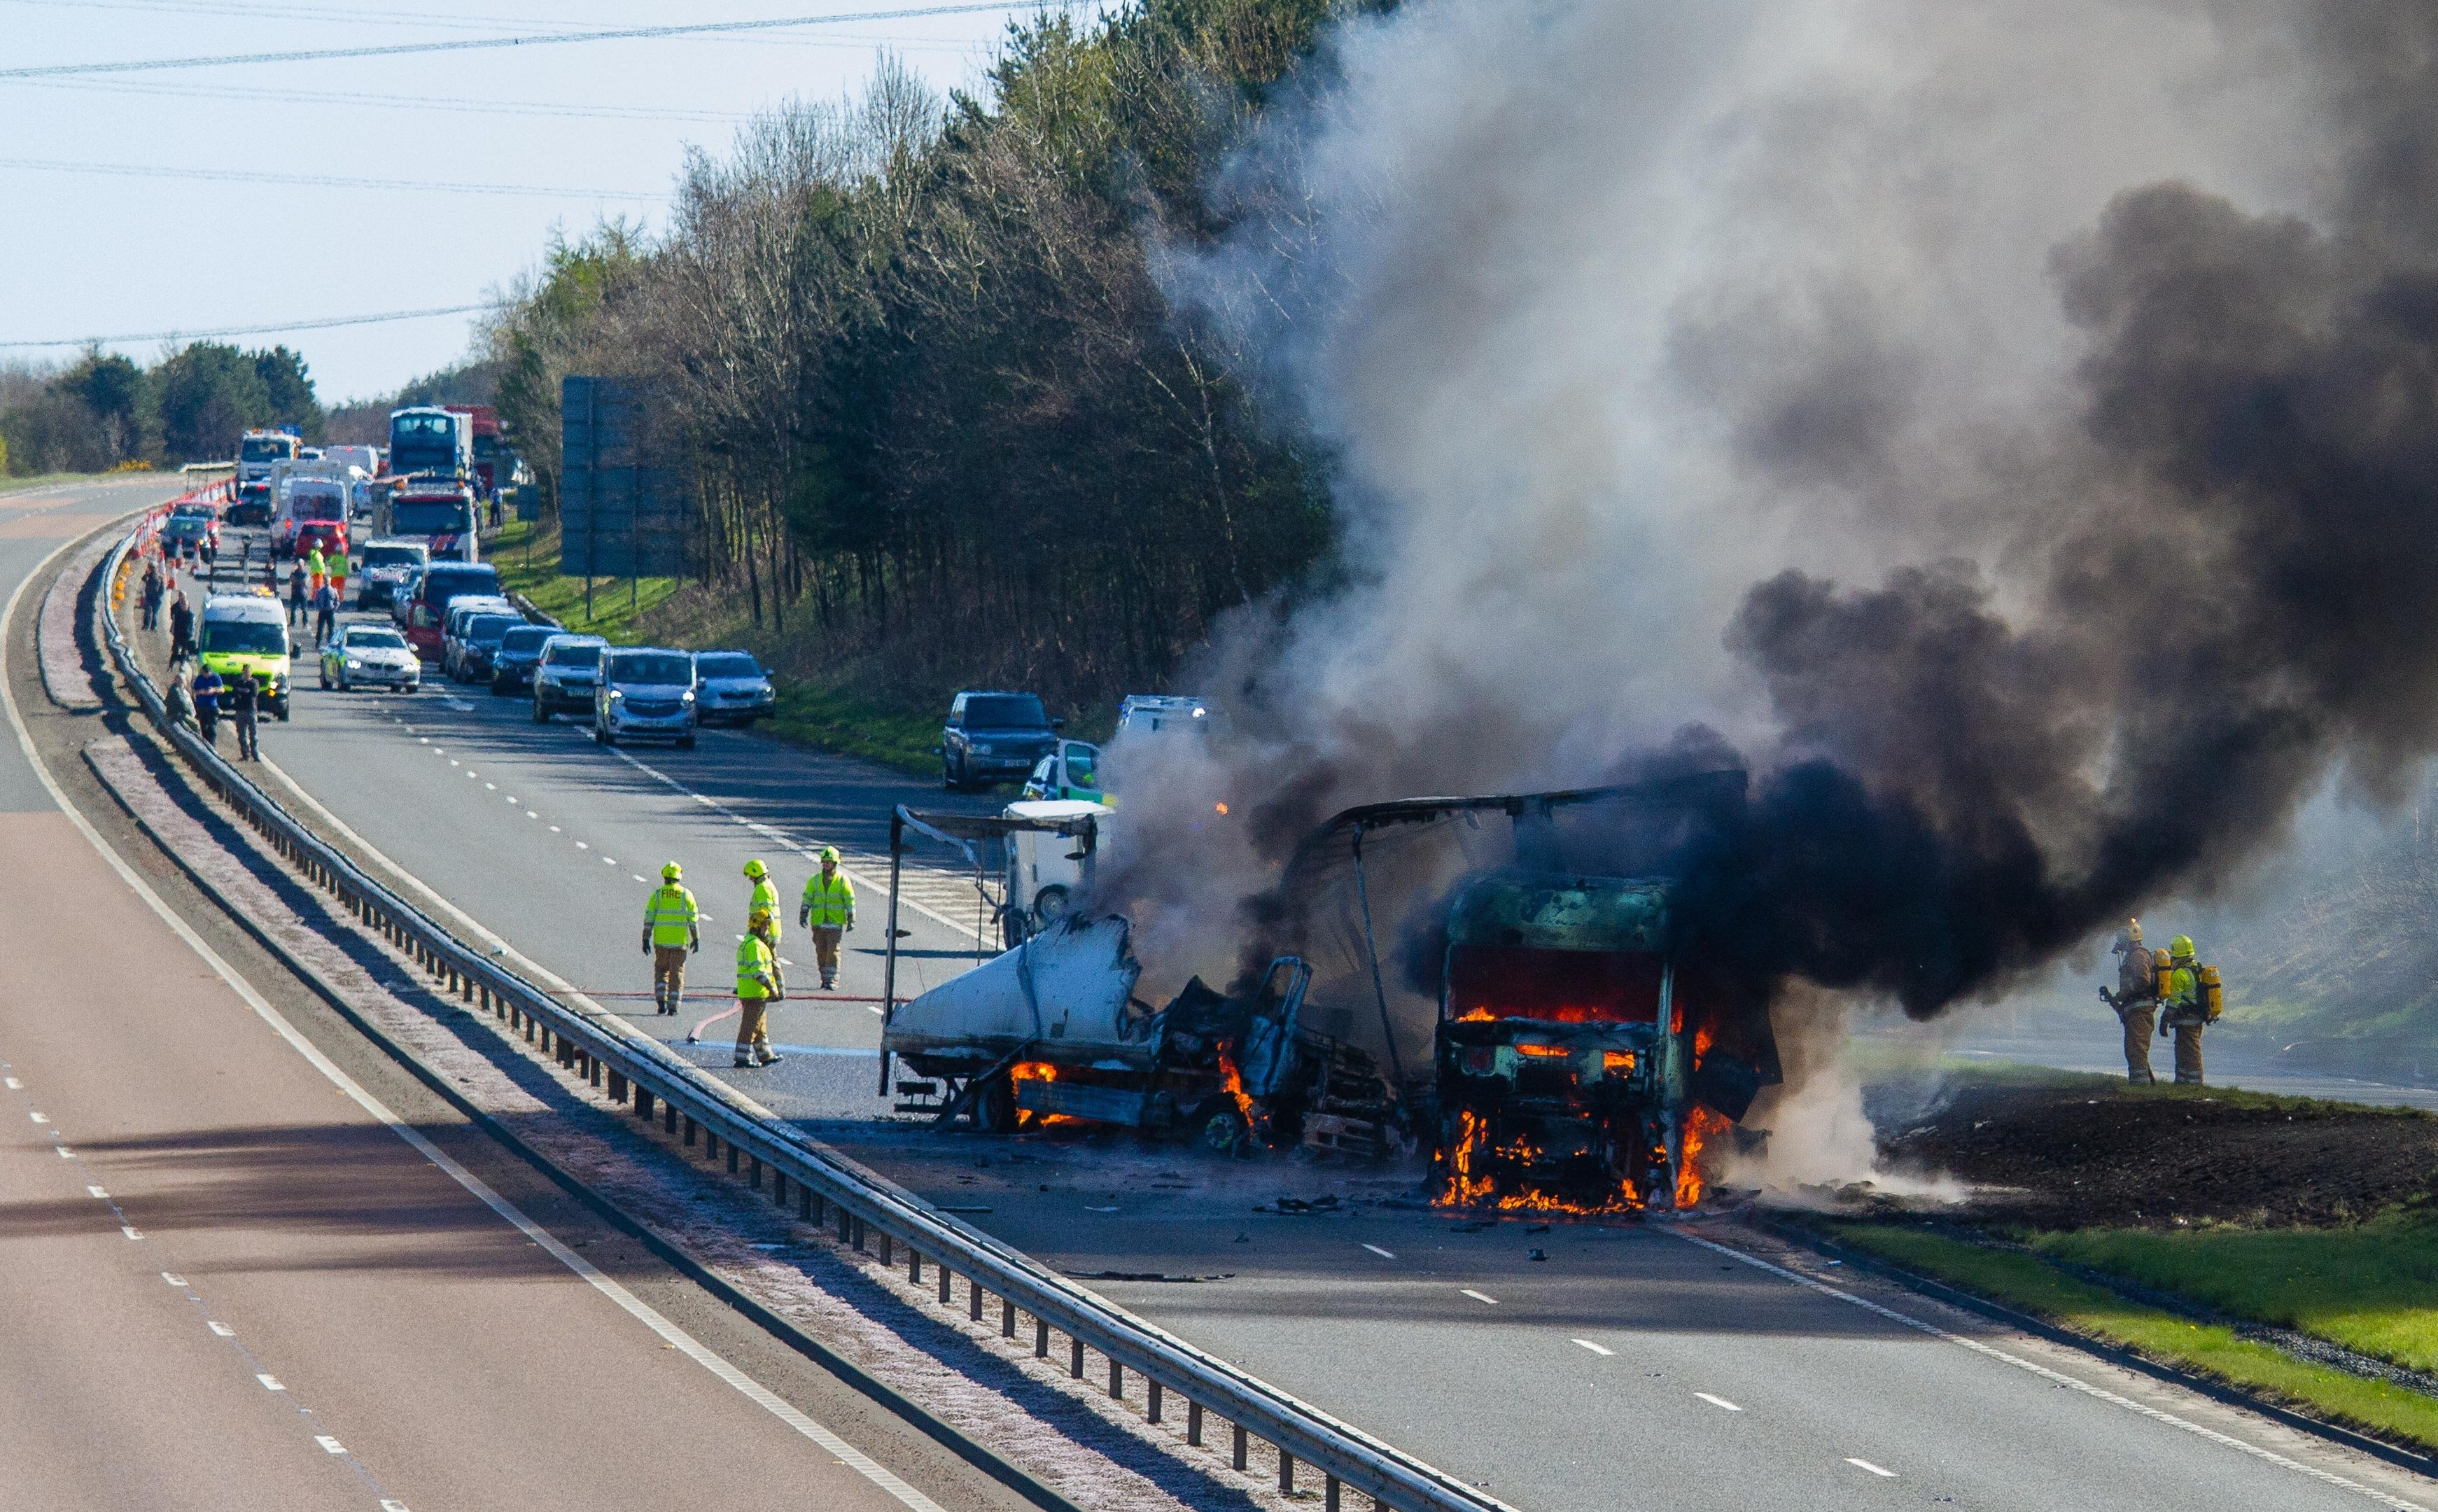 Two lorries caught fire.